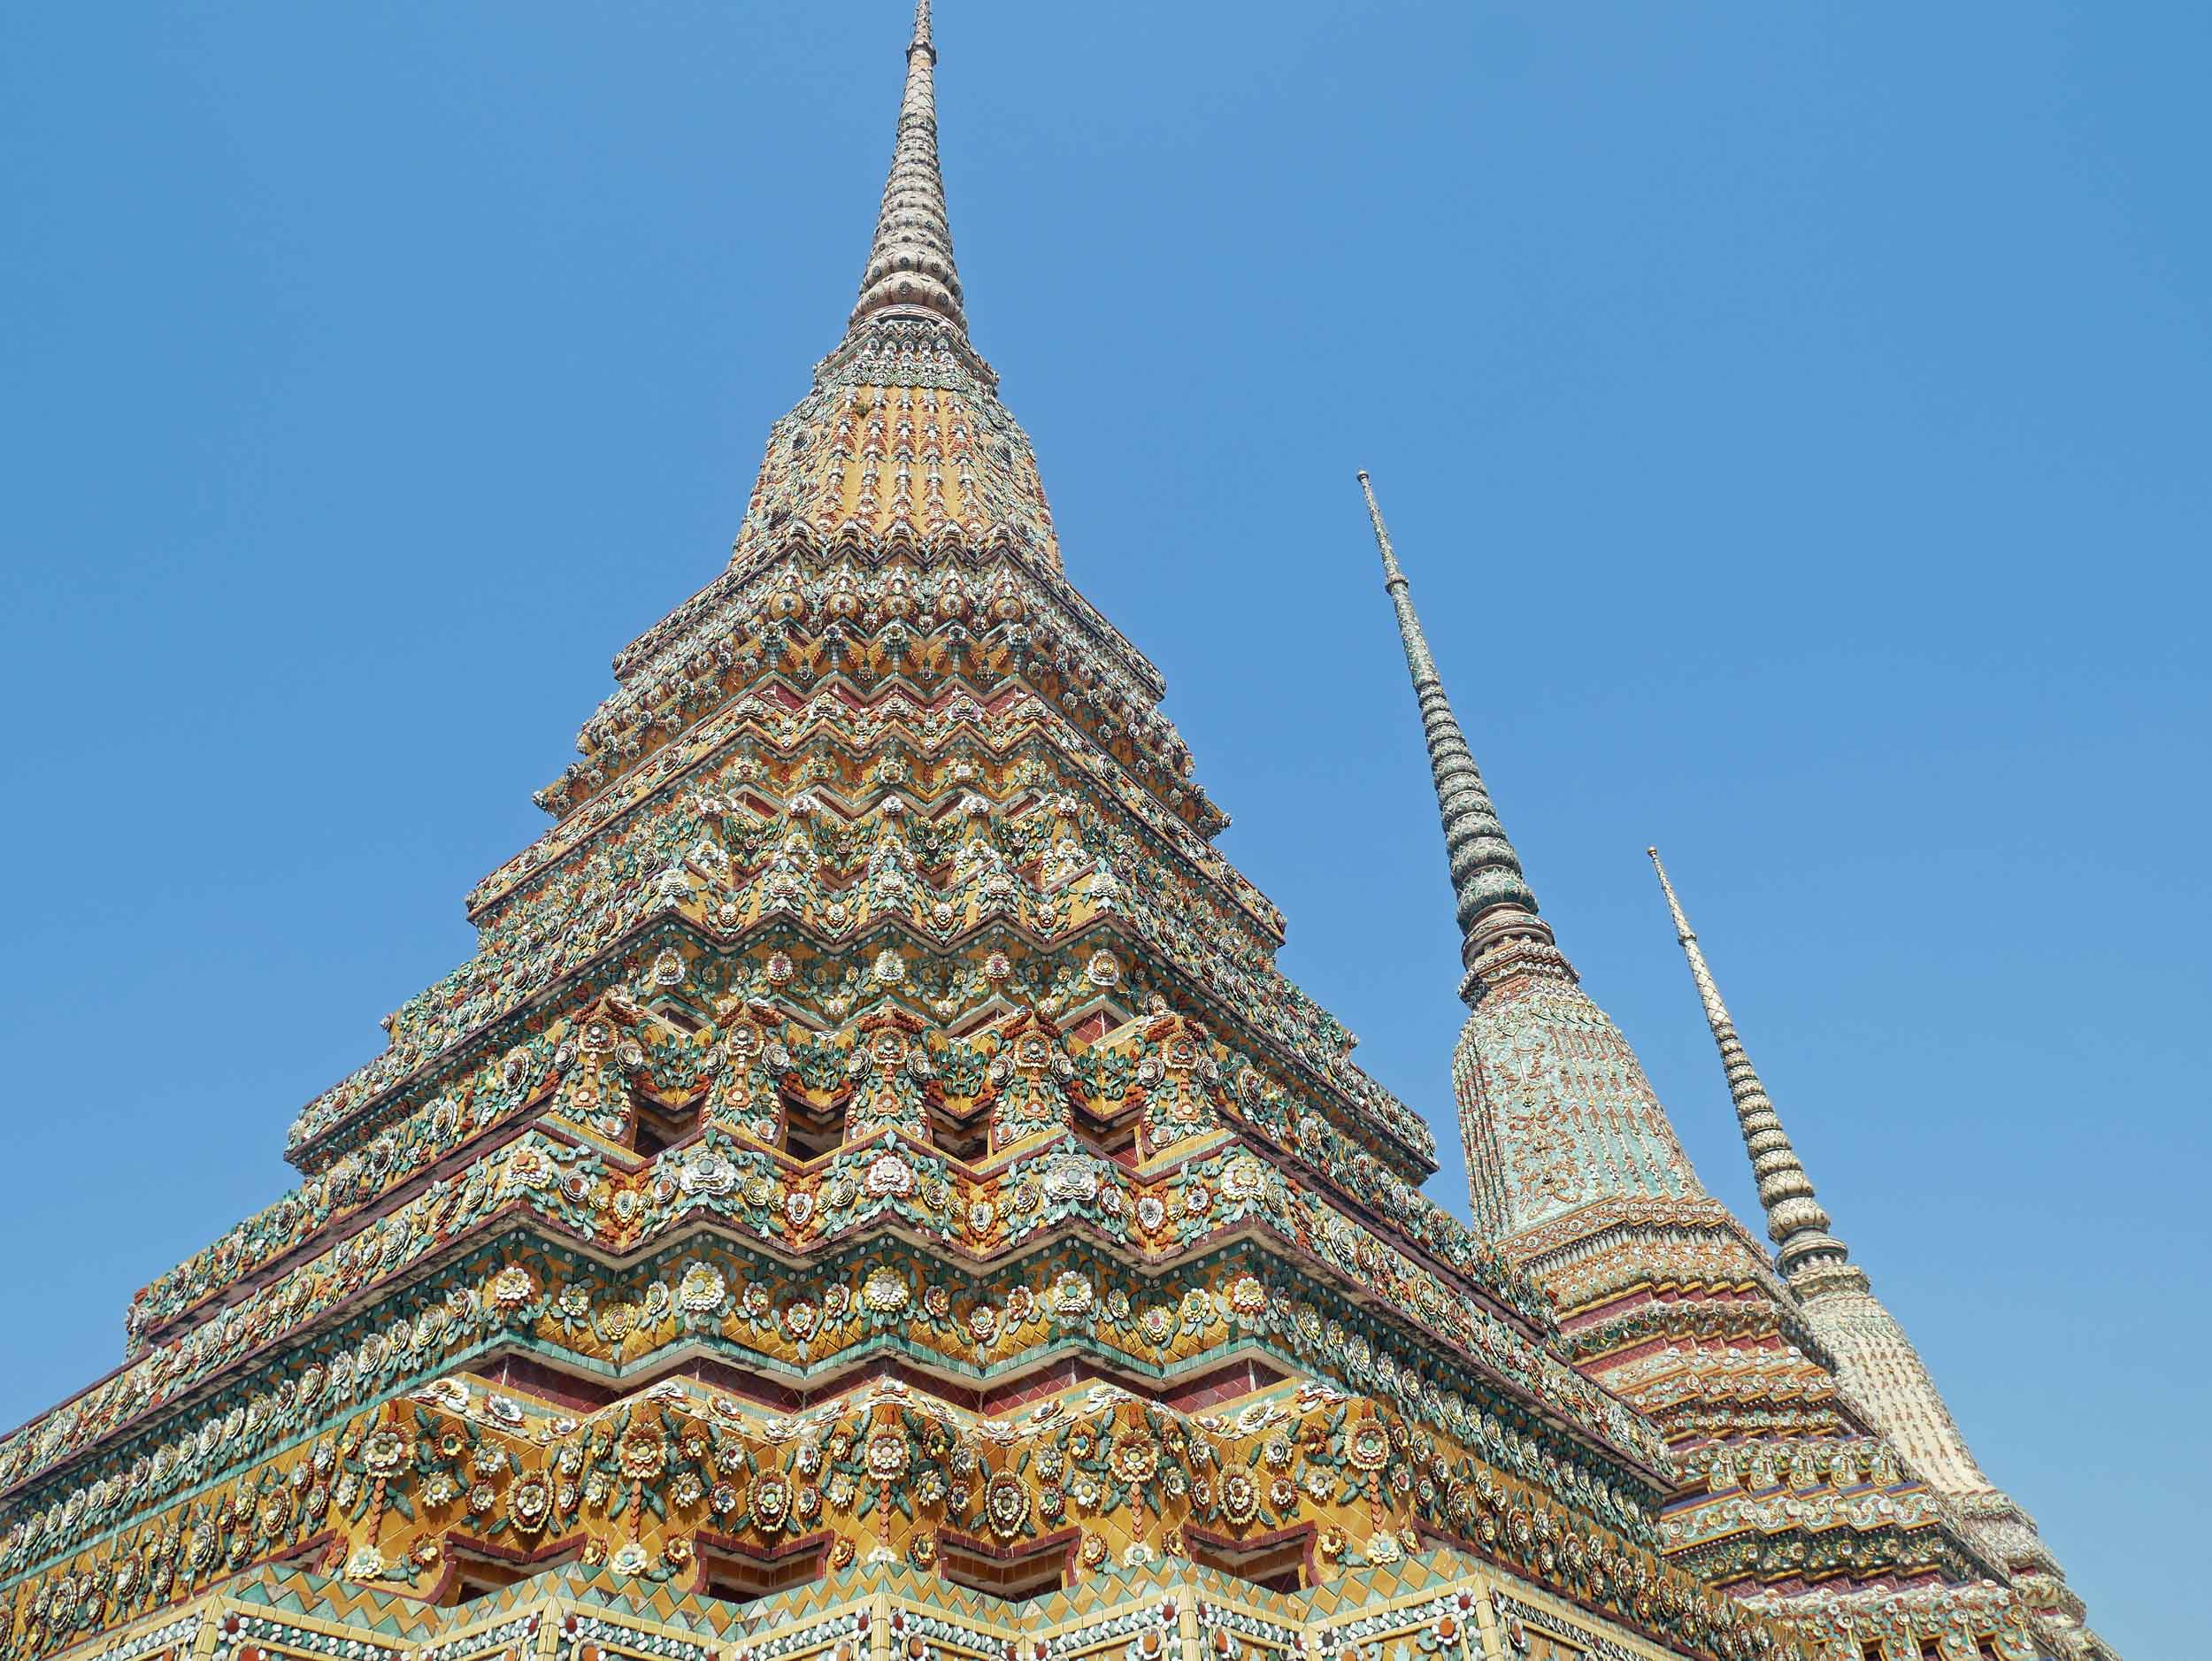 The colorful tops of Phra Maha Chedi Si Rajakarn within the Wat Pho complex and dedicated to the first four kings of Thailand's Chakri dynasty.